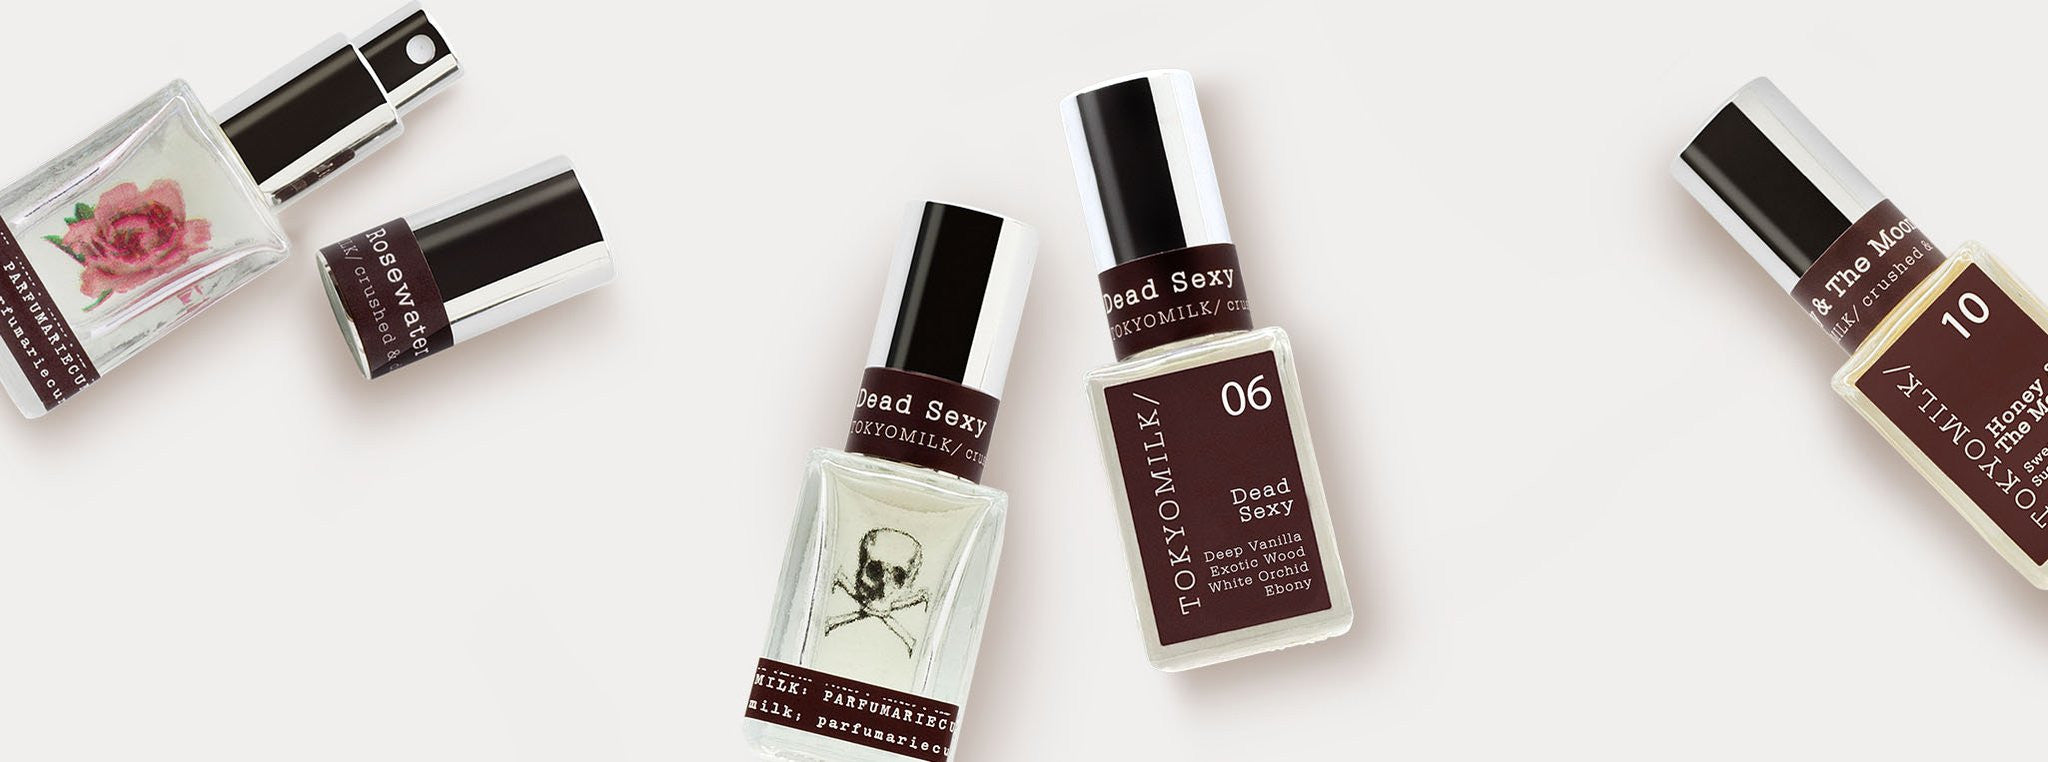 beauty bar Tokyo milk fragrance collection margo elena